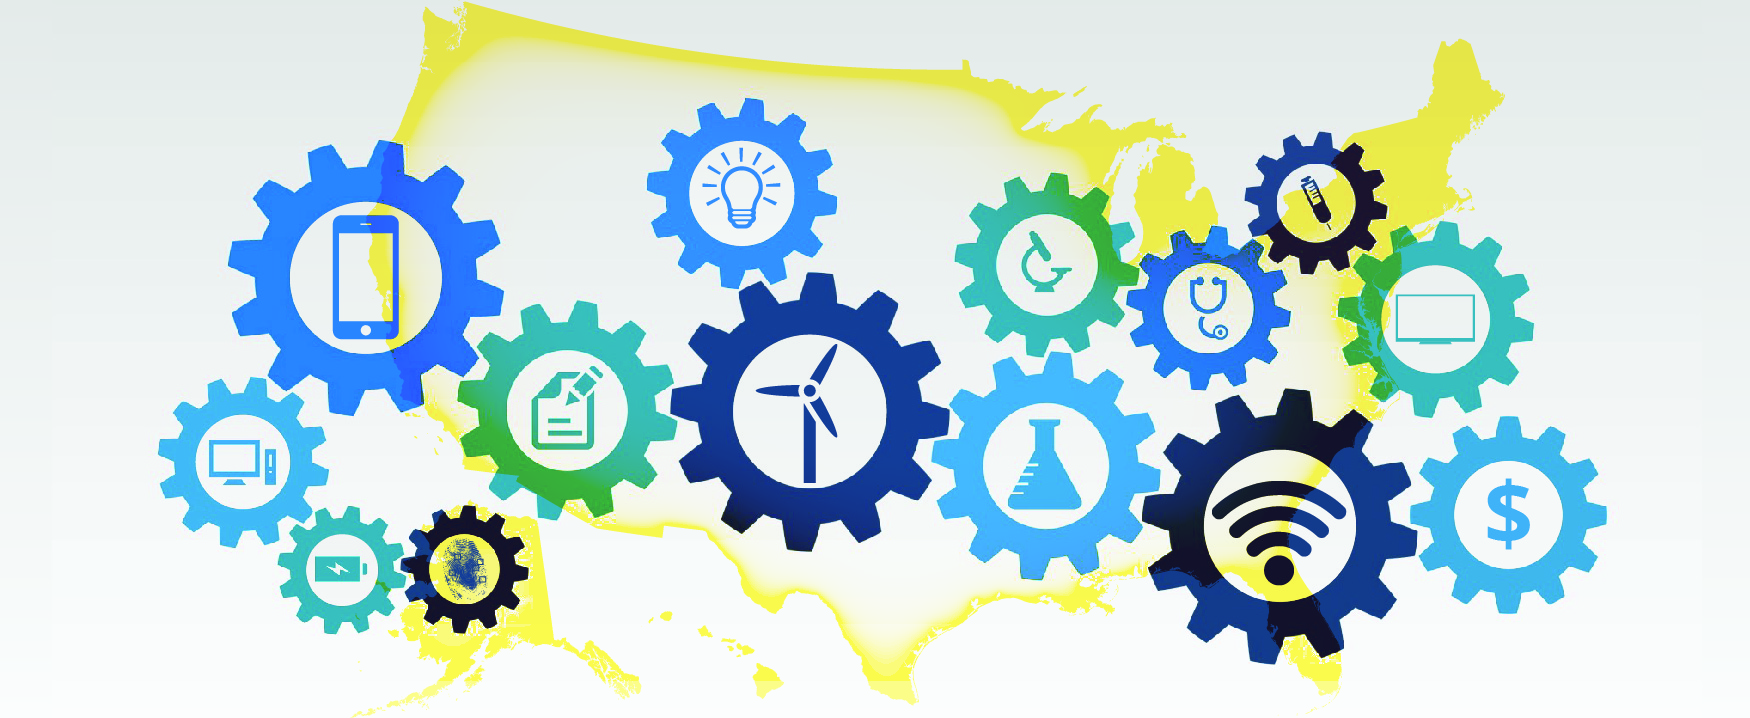 This graphic shows an outline of the United States overlaid with the simple outlines of different sized gears. In the center of the gears are simple icons, including a battery, a computer screen, a cell phone, a paper and pencil, a light bulb, a windmill, a beaker, a stethoscope, a wifi signal, a dollar sign, and a television screen.